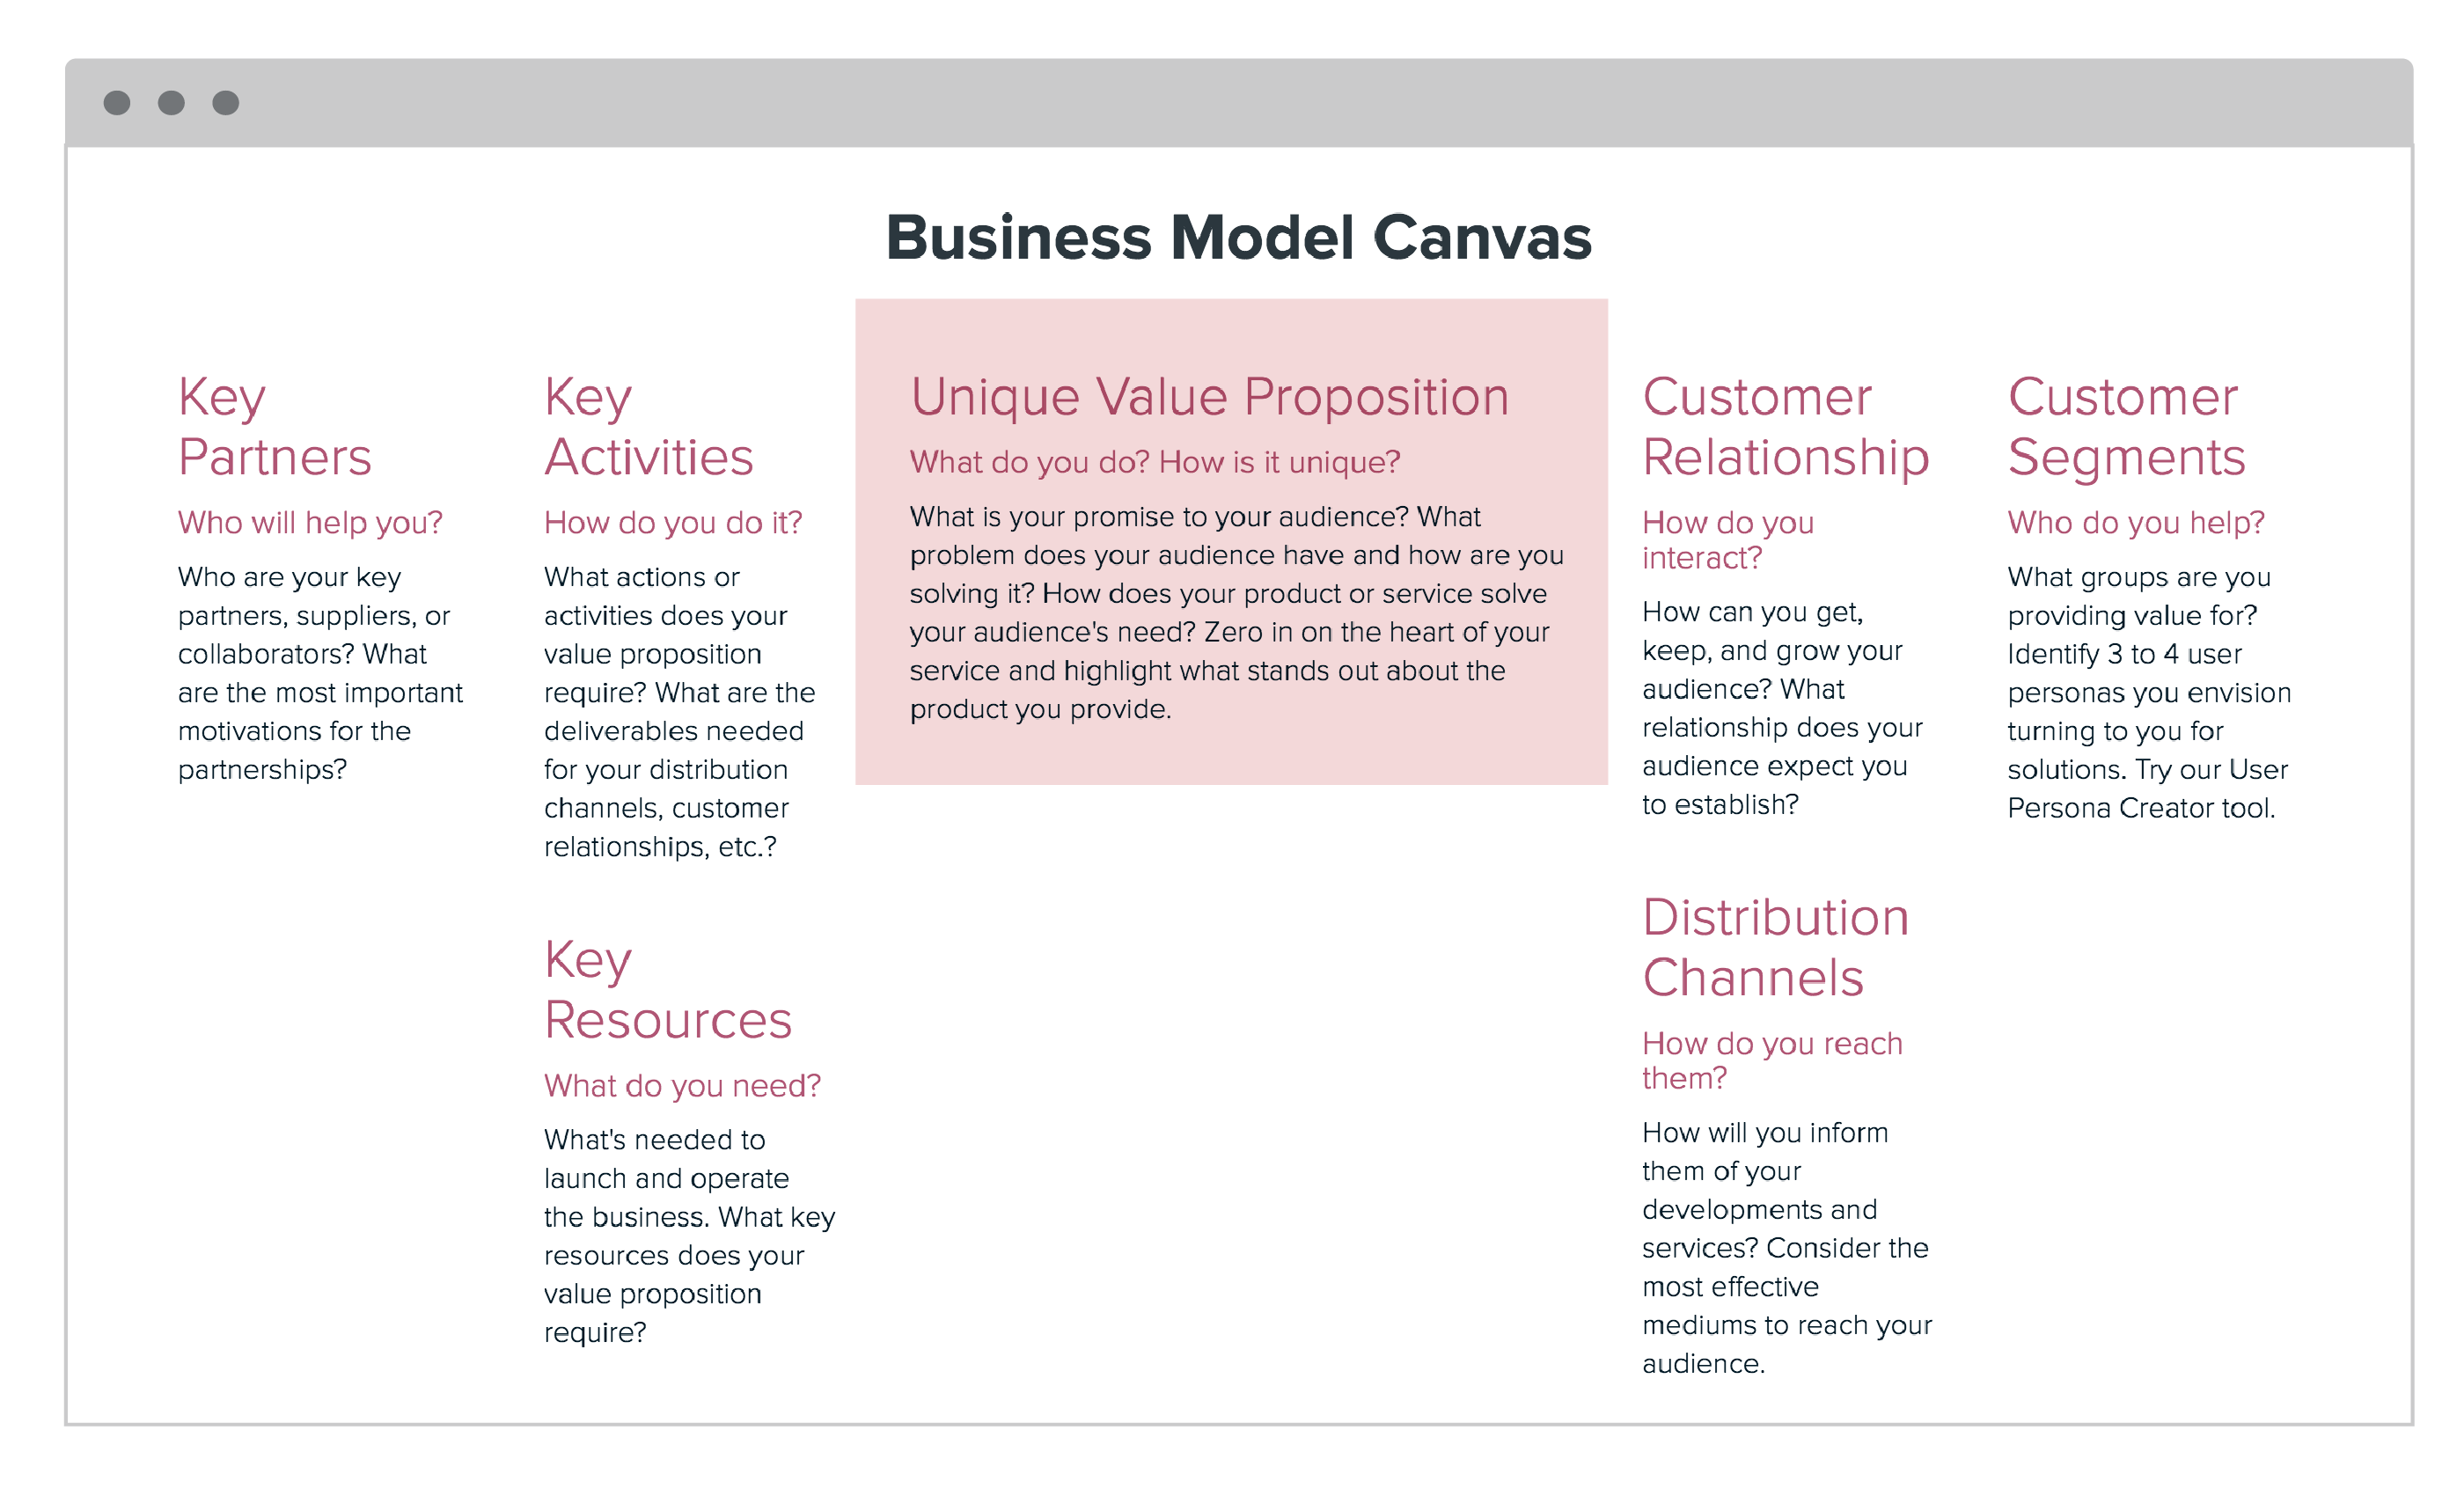 how to create an image canvas